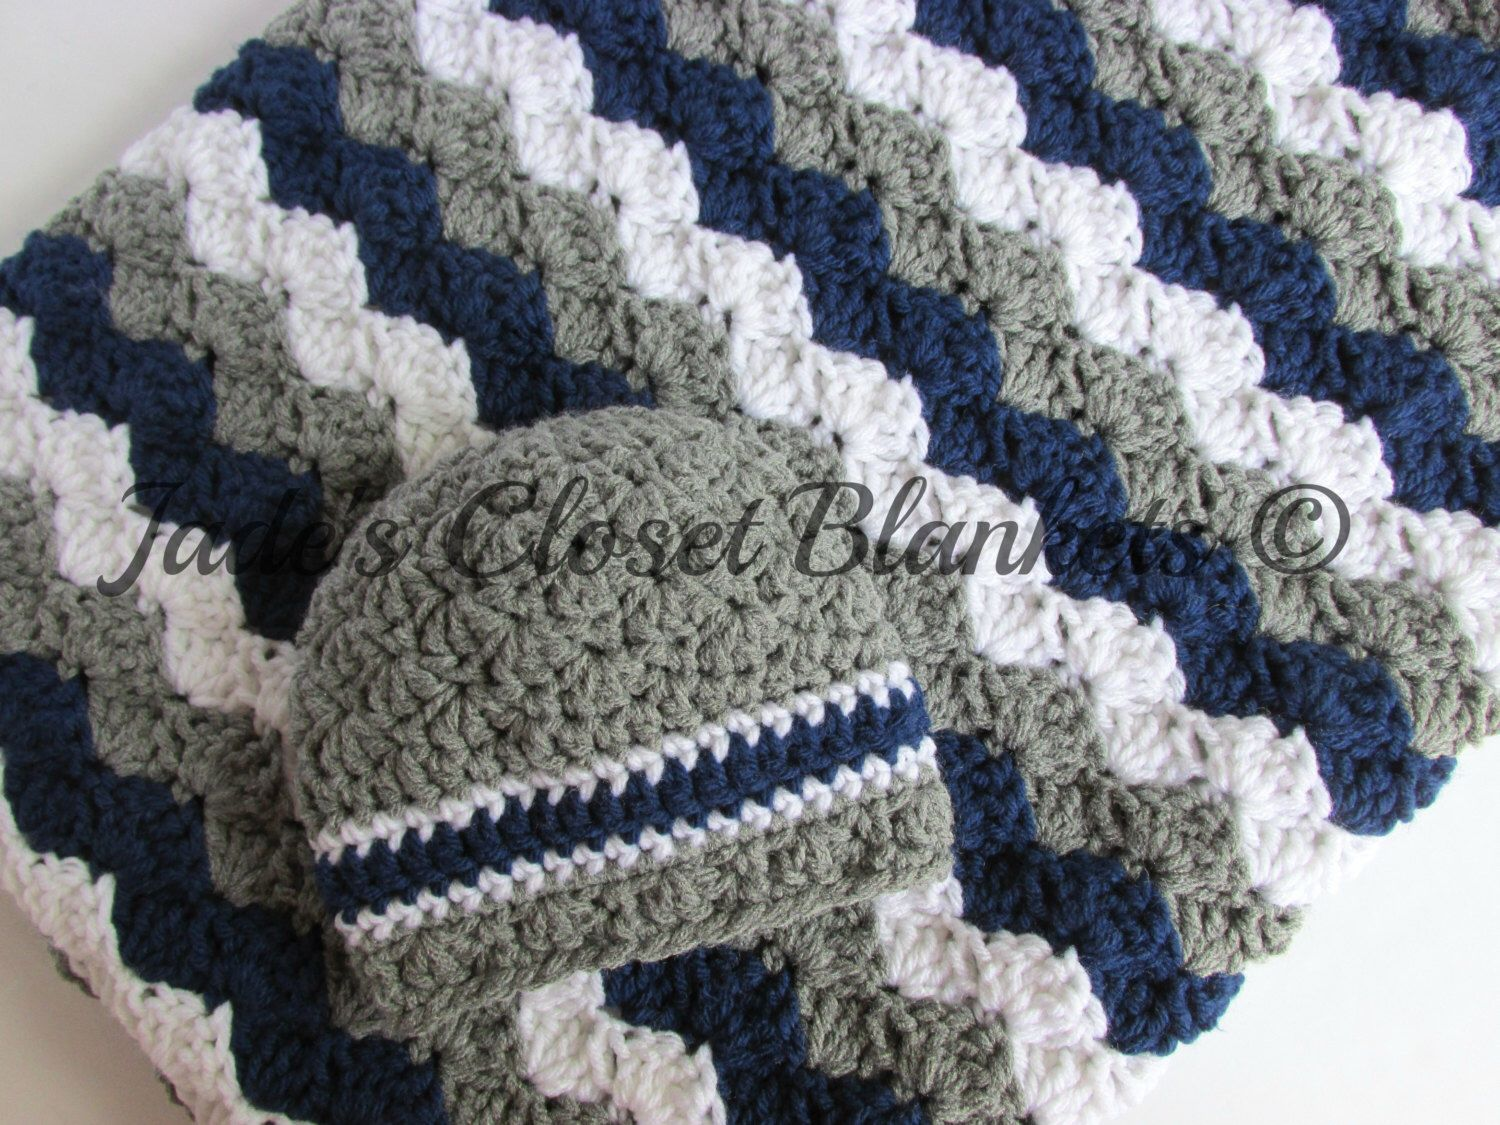 Car baby boy blanket crochet blanket by prairieheartstrings - Baby Gift Set Crochet Grey Gray Navy Blue And White Hat And Crib Blanket Set Baby Boy New Baby Gift Set